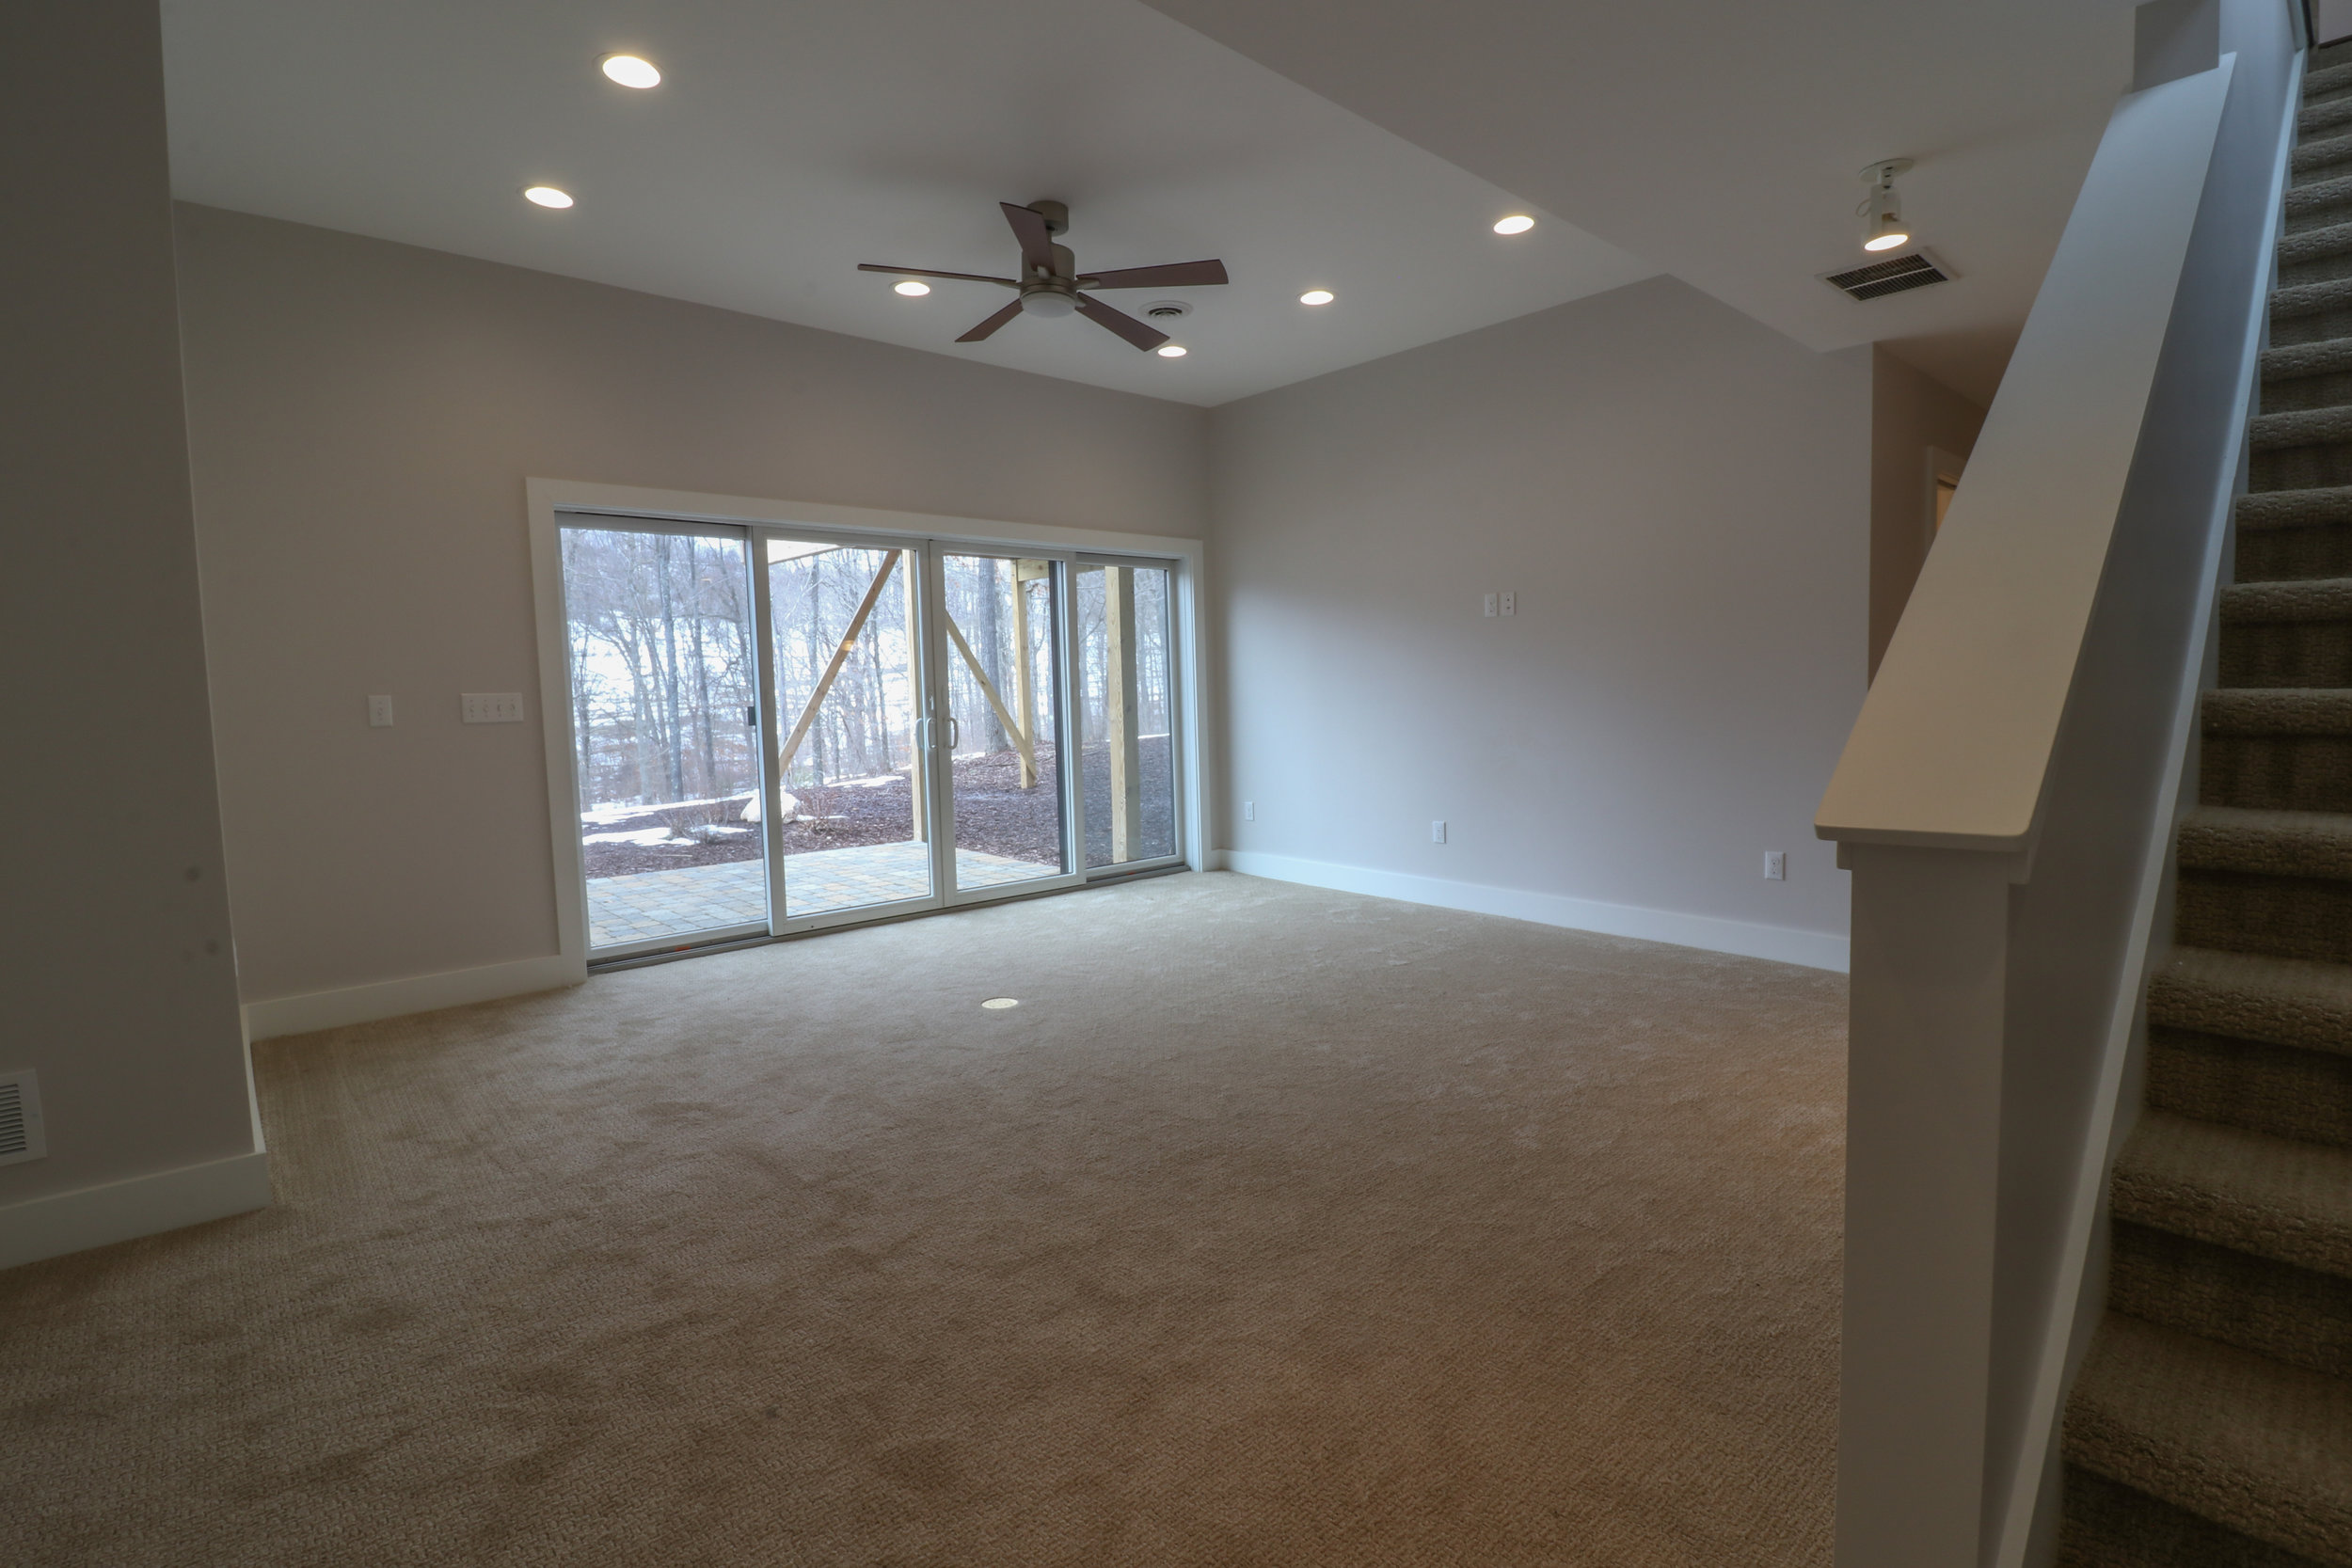 gosnell_builders_home_for_sale_ridgeview_valley24.jpg